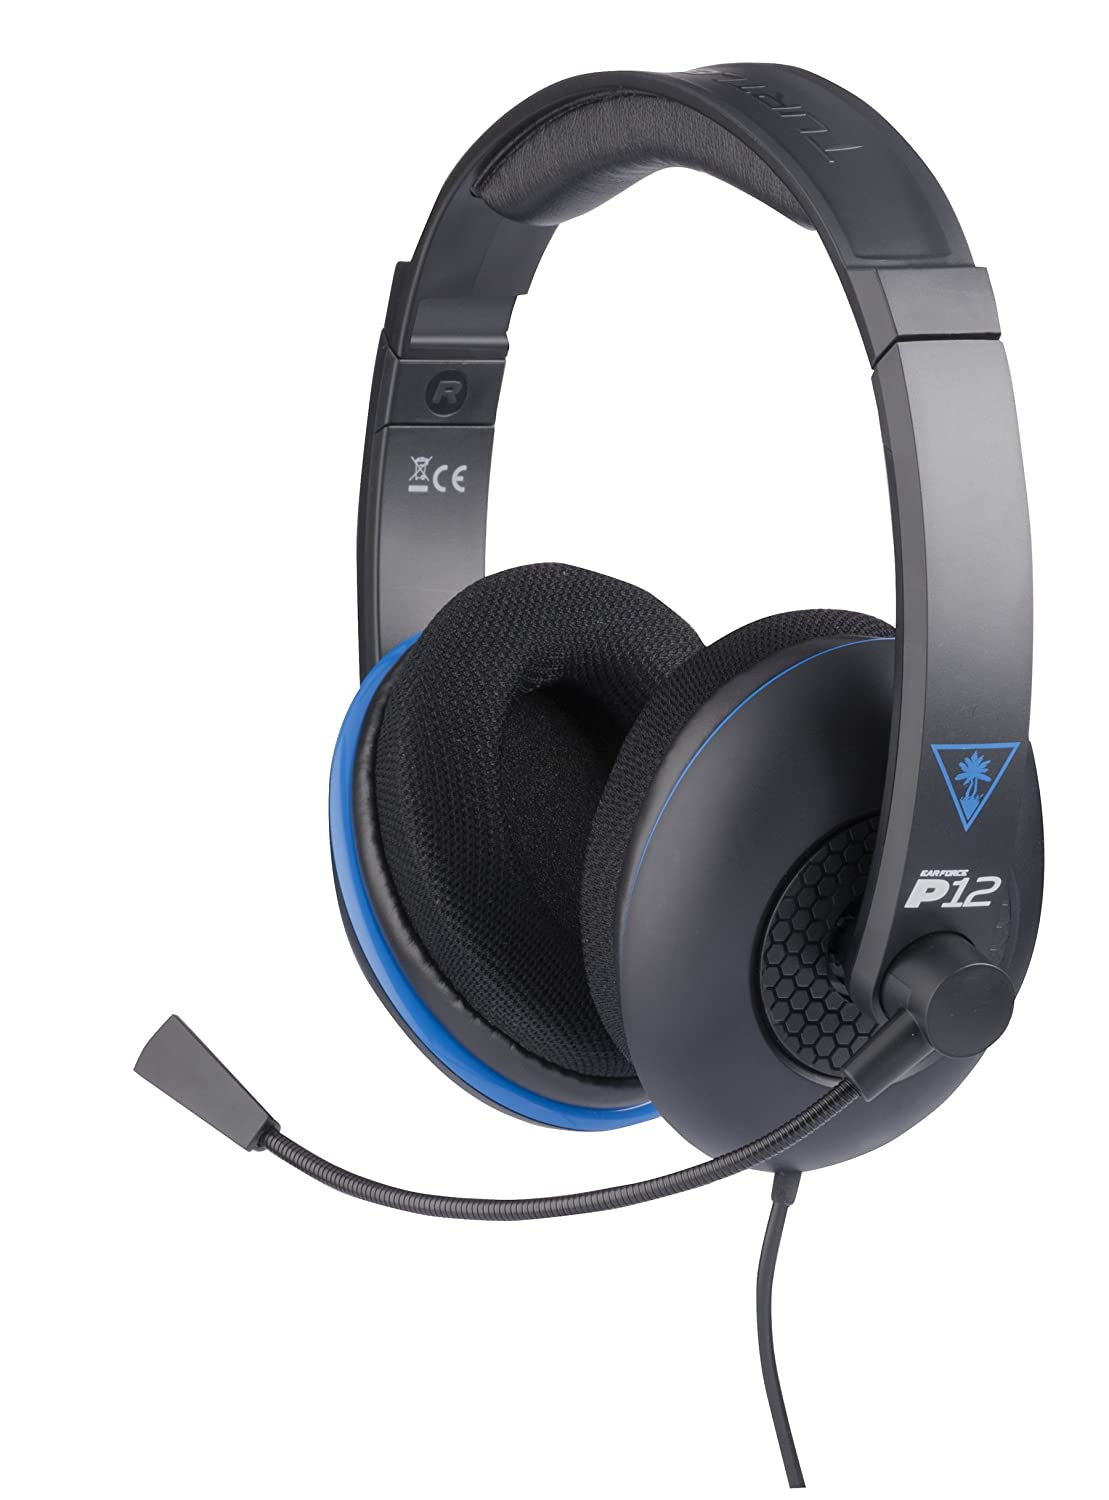 Turtle Beach - Ear Force P12 - Amplified Stereo Gaming Headset - PS4, PS Vita, and Mobile Devices - FFP